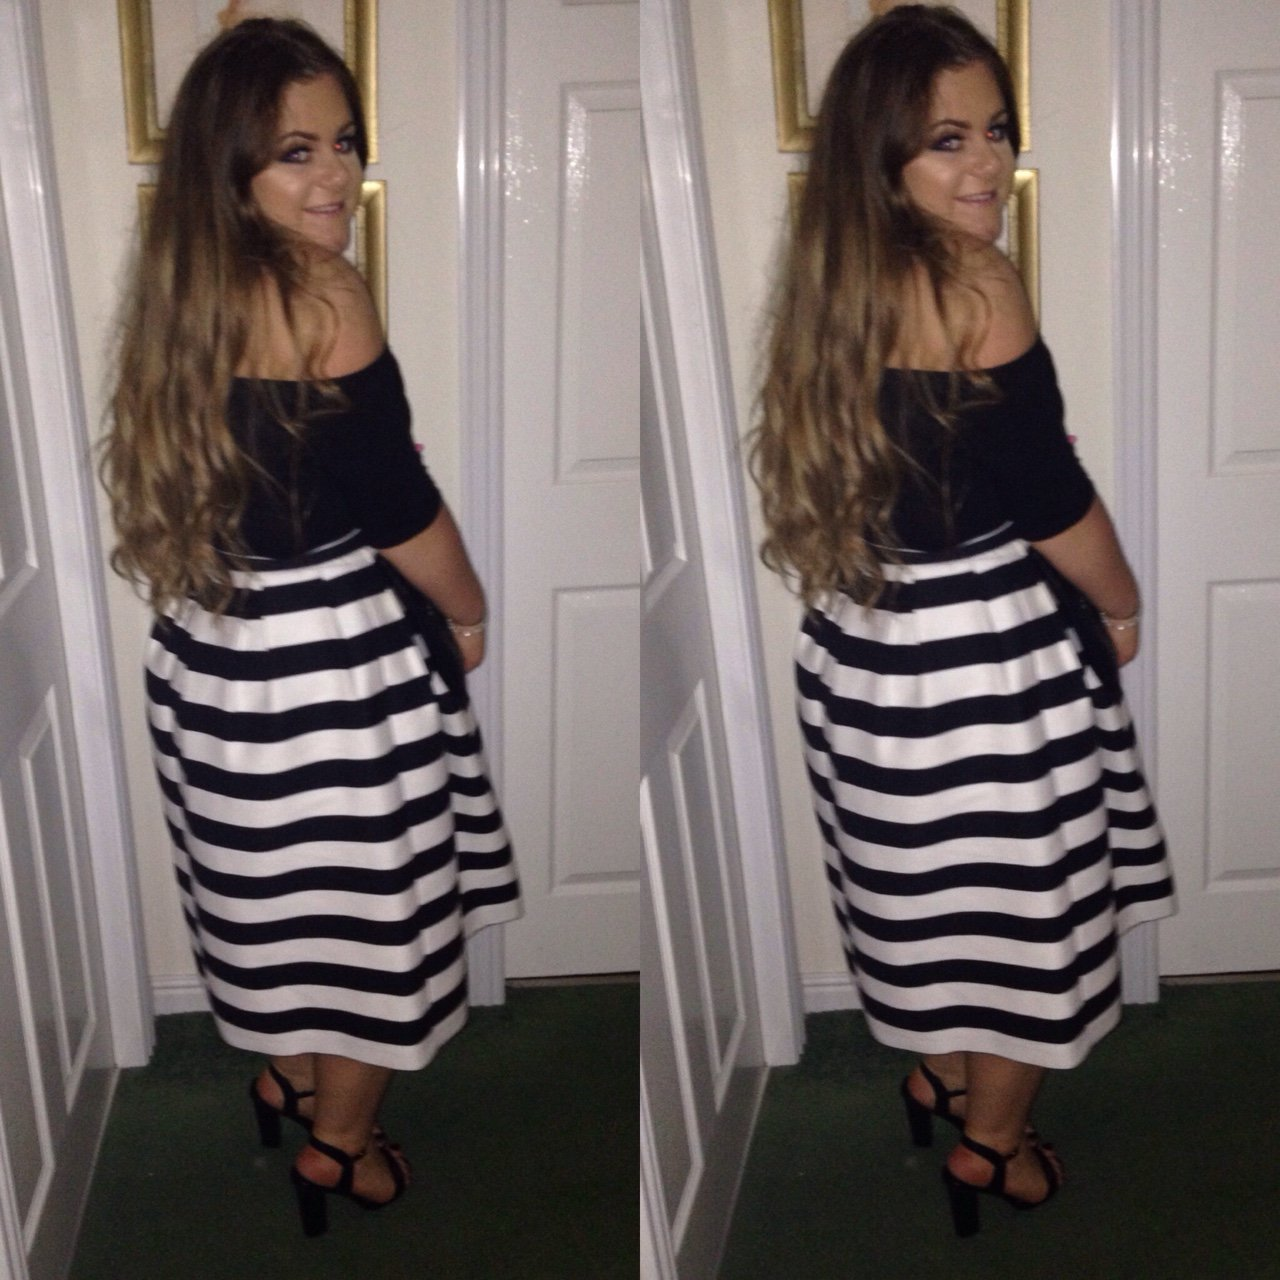 d567a481b5 REDUCED FOR 5 DAYS ONLY! Topshop striped midi skirt. Worn a - Depop